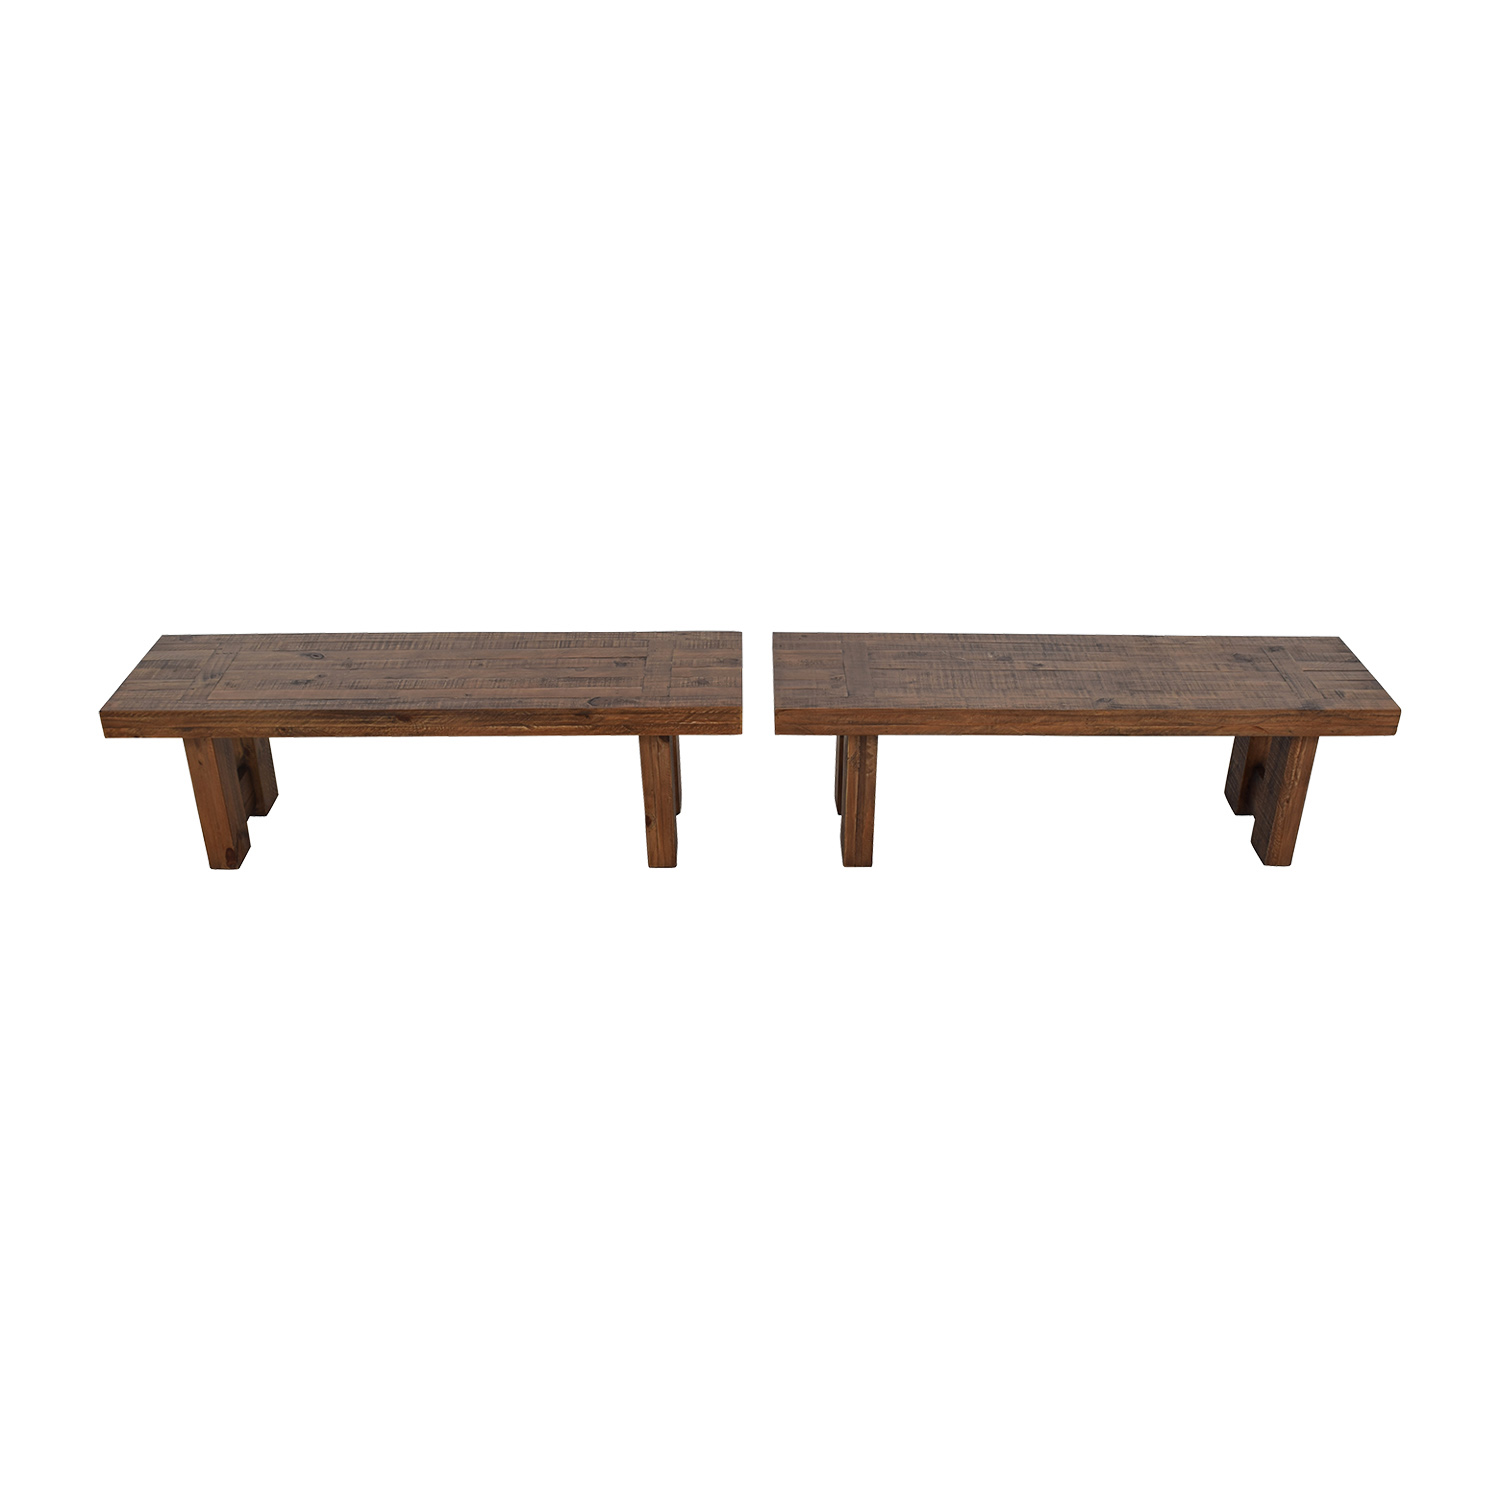 Jordans Furniture Jordans Furniture Acacia Rustic Wood Benches second hand